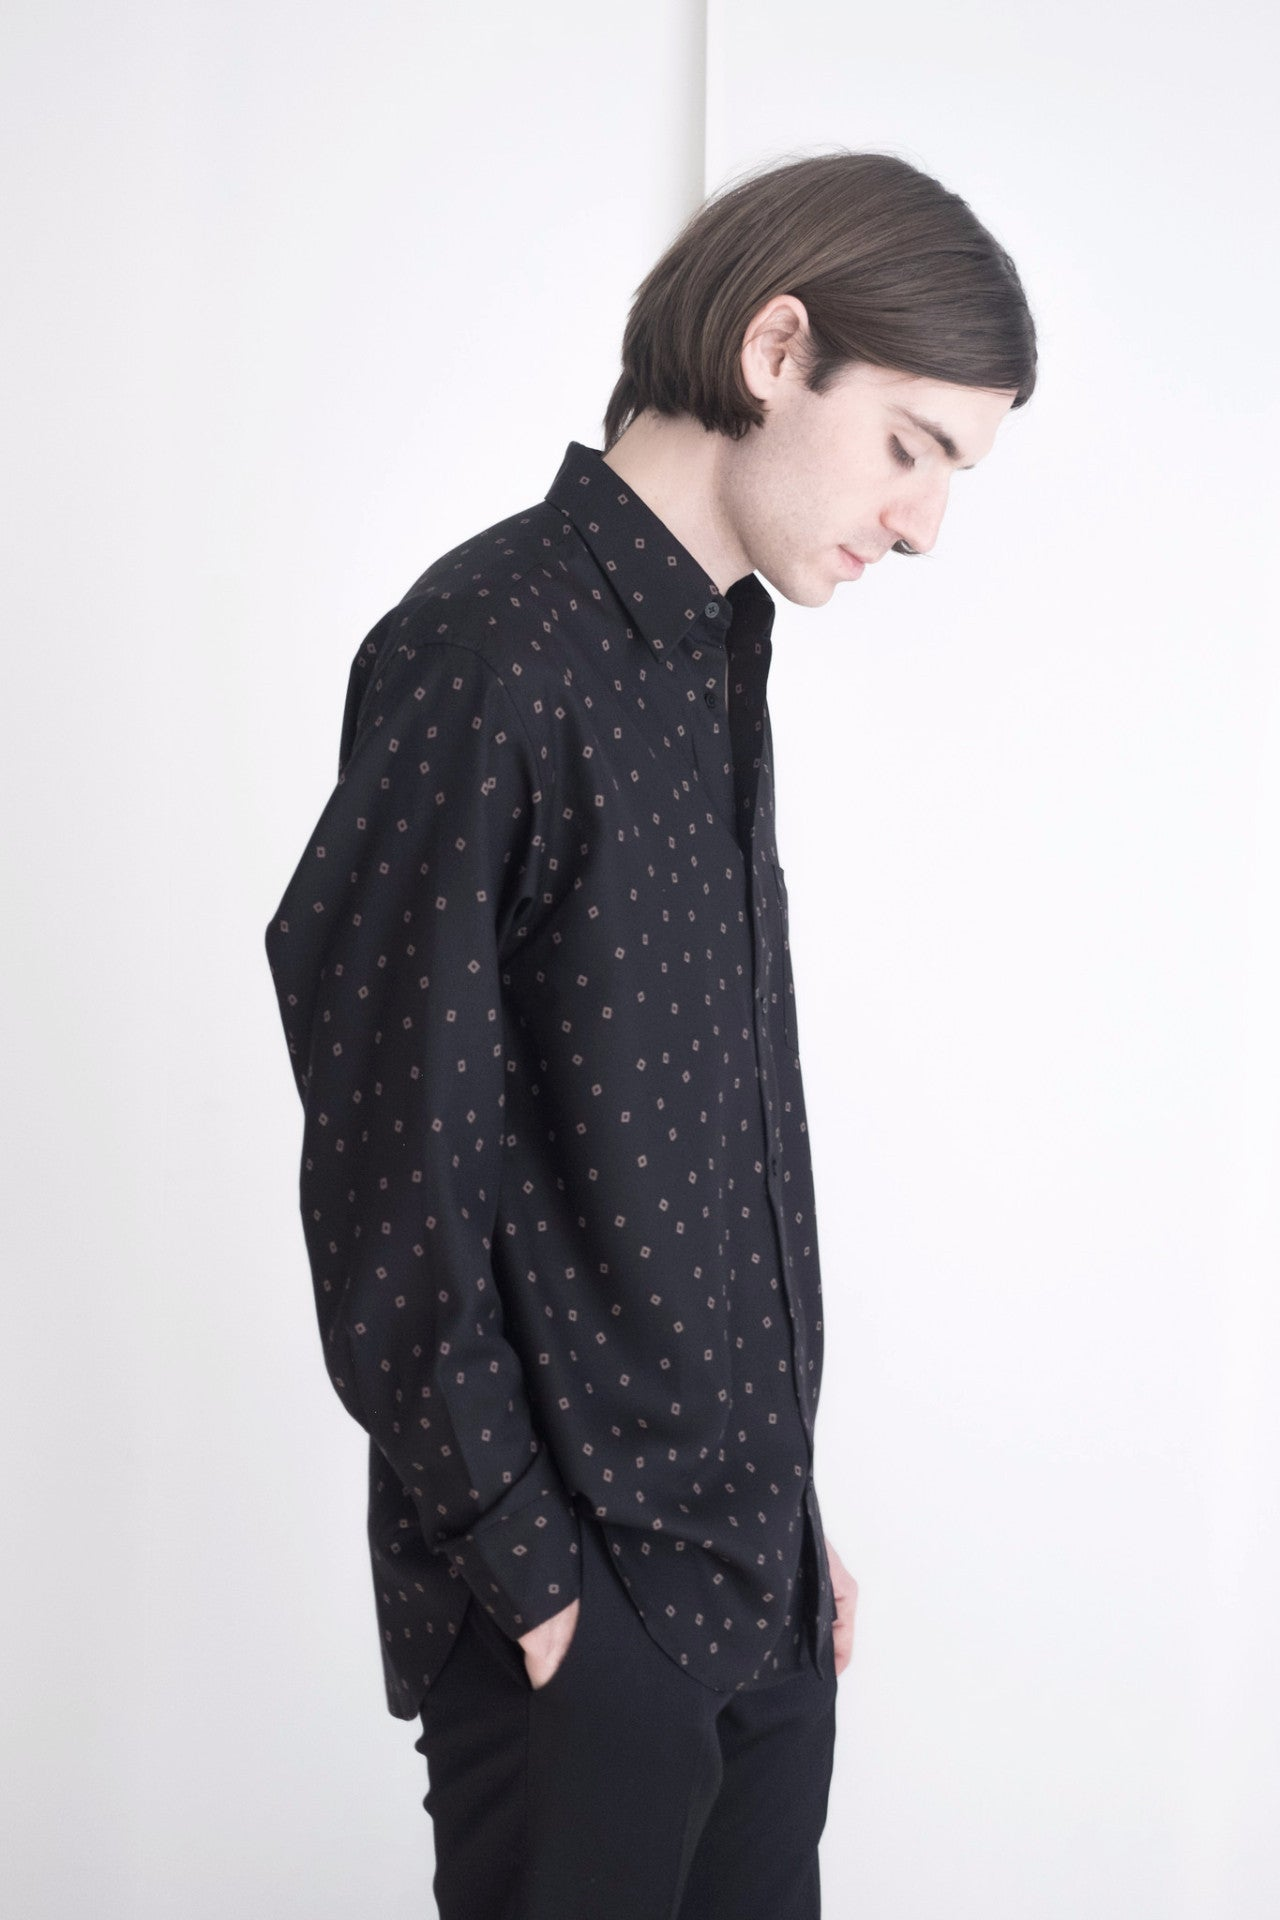 Black Hallow Square Dress Shirt